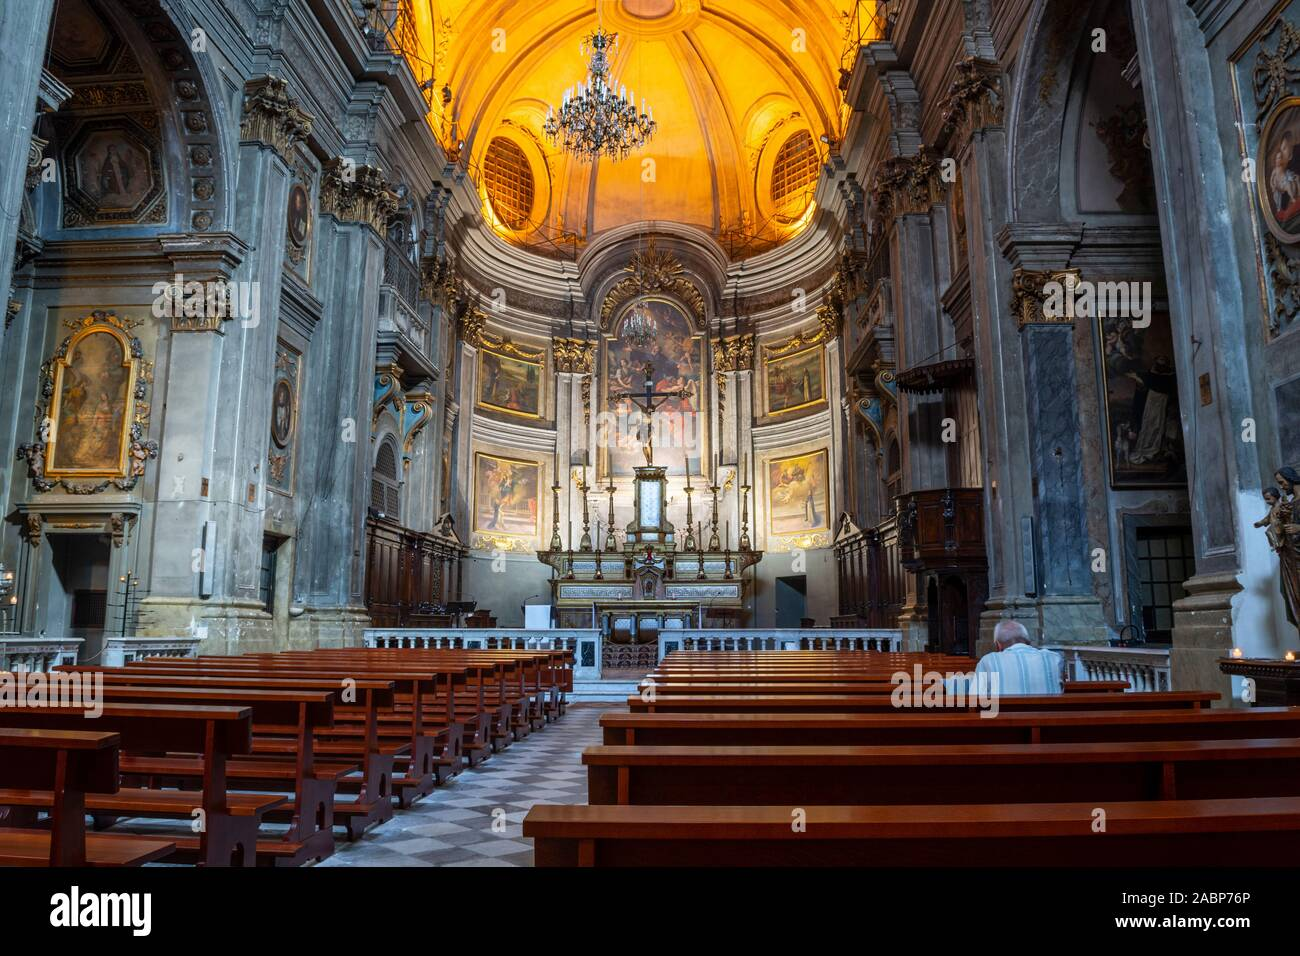 Interior view of the baroque Saint Francois de Paule Church in the Cours Saleya area of Old Town Nice France as an unidentified man prays in the pews Stock Photo